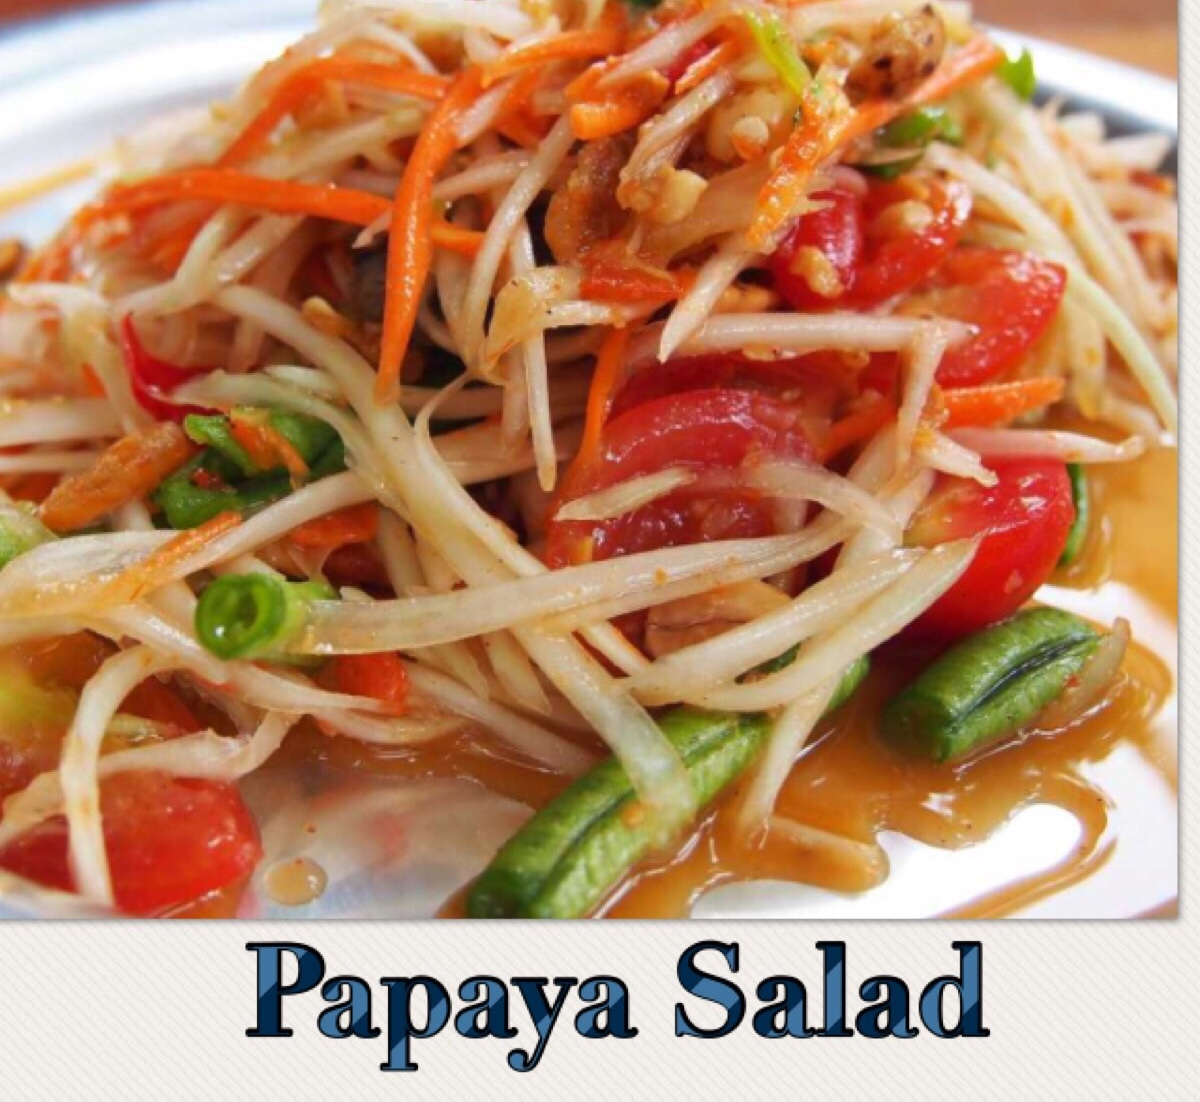 17. PAPAYA SALAD